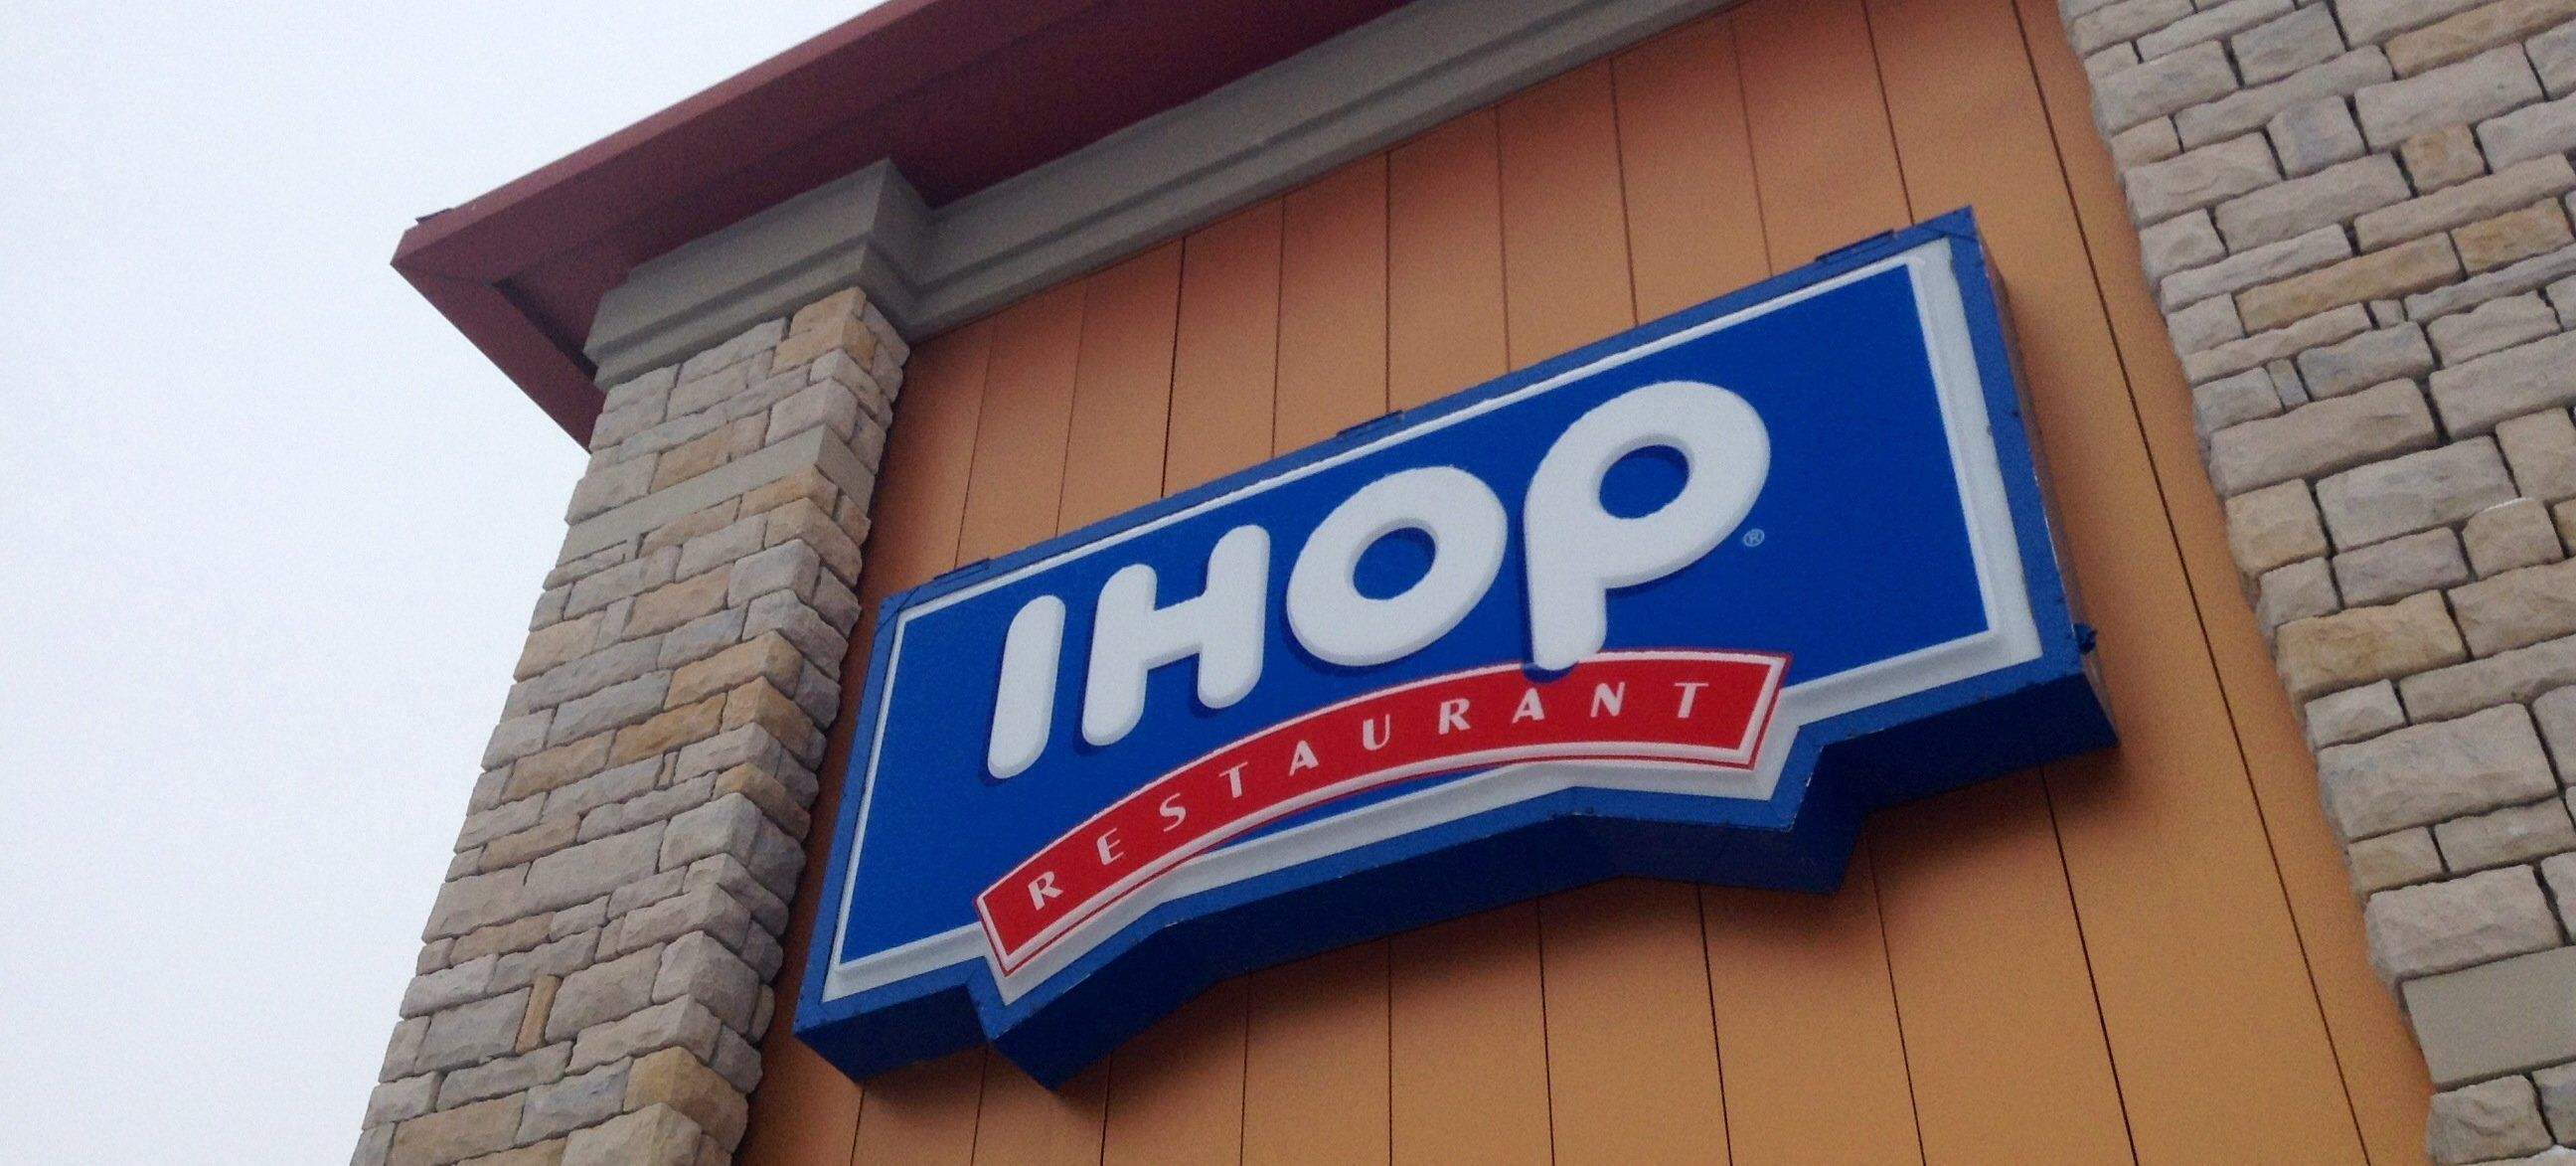 IHOP Exterior Facade Logo Pictures by Mike Mozart of TheToyChannel and JeepersMedia on YouTube. Plz Share these Pictures under Creative Commons Attribution